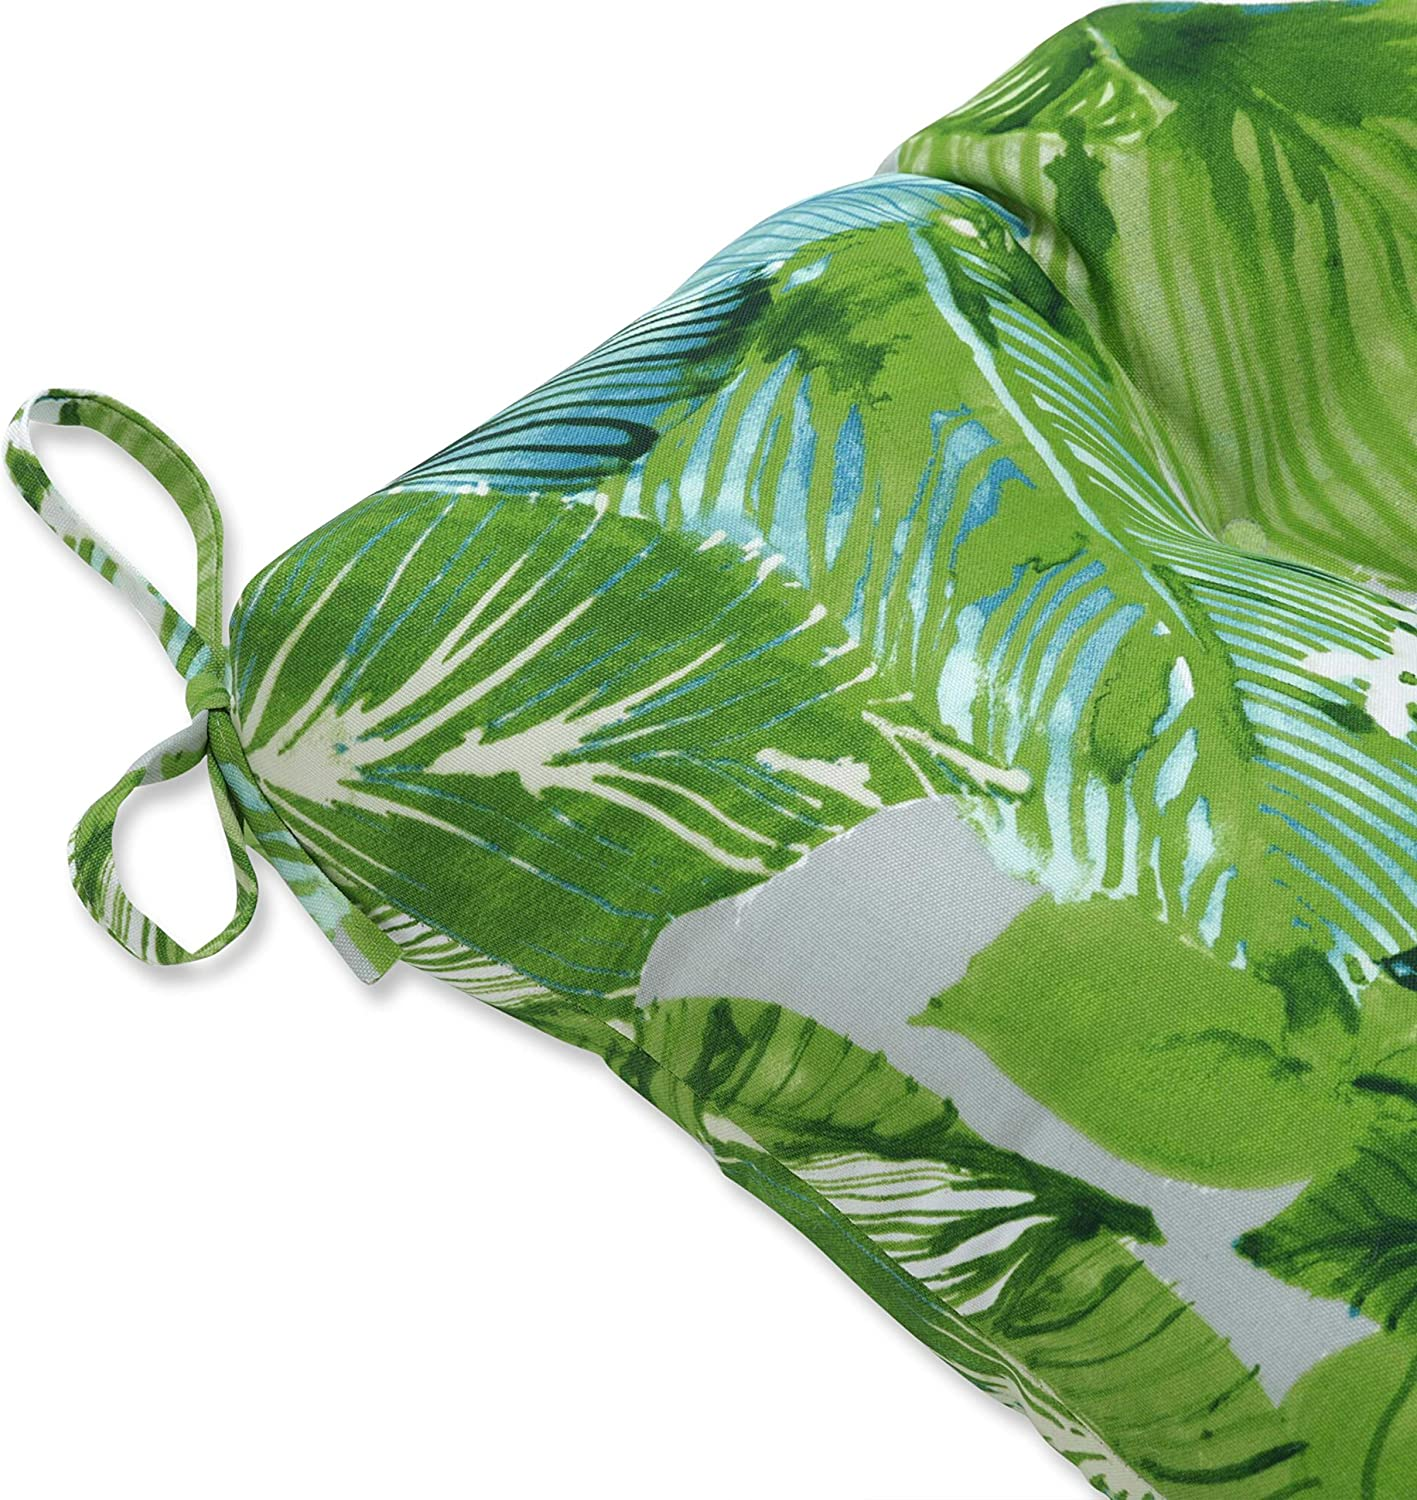 Pillow Perfect Outdoor Indoor Lush Leaf5  X 2 2 Large Chair Pads 2 Pack Green 17.5 x 16.5